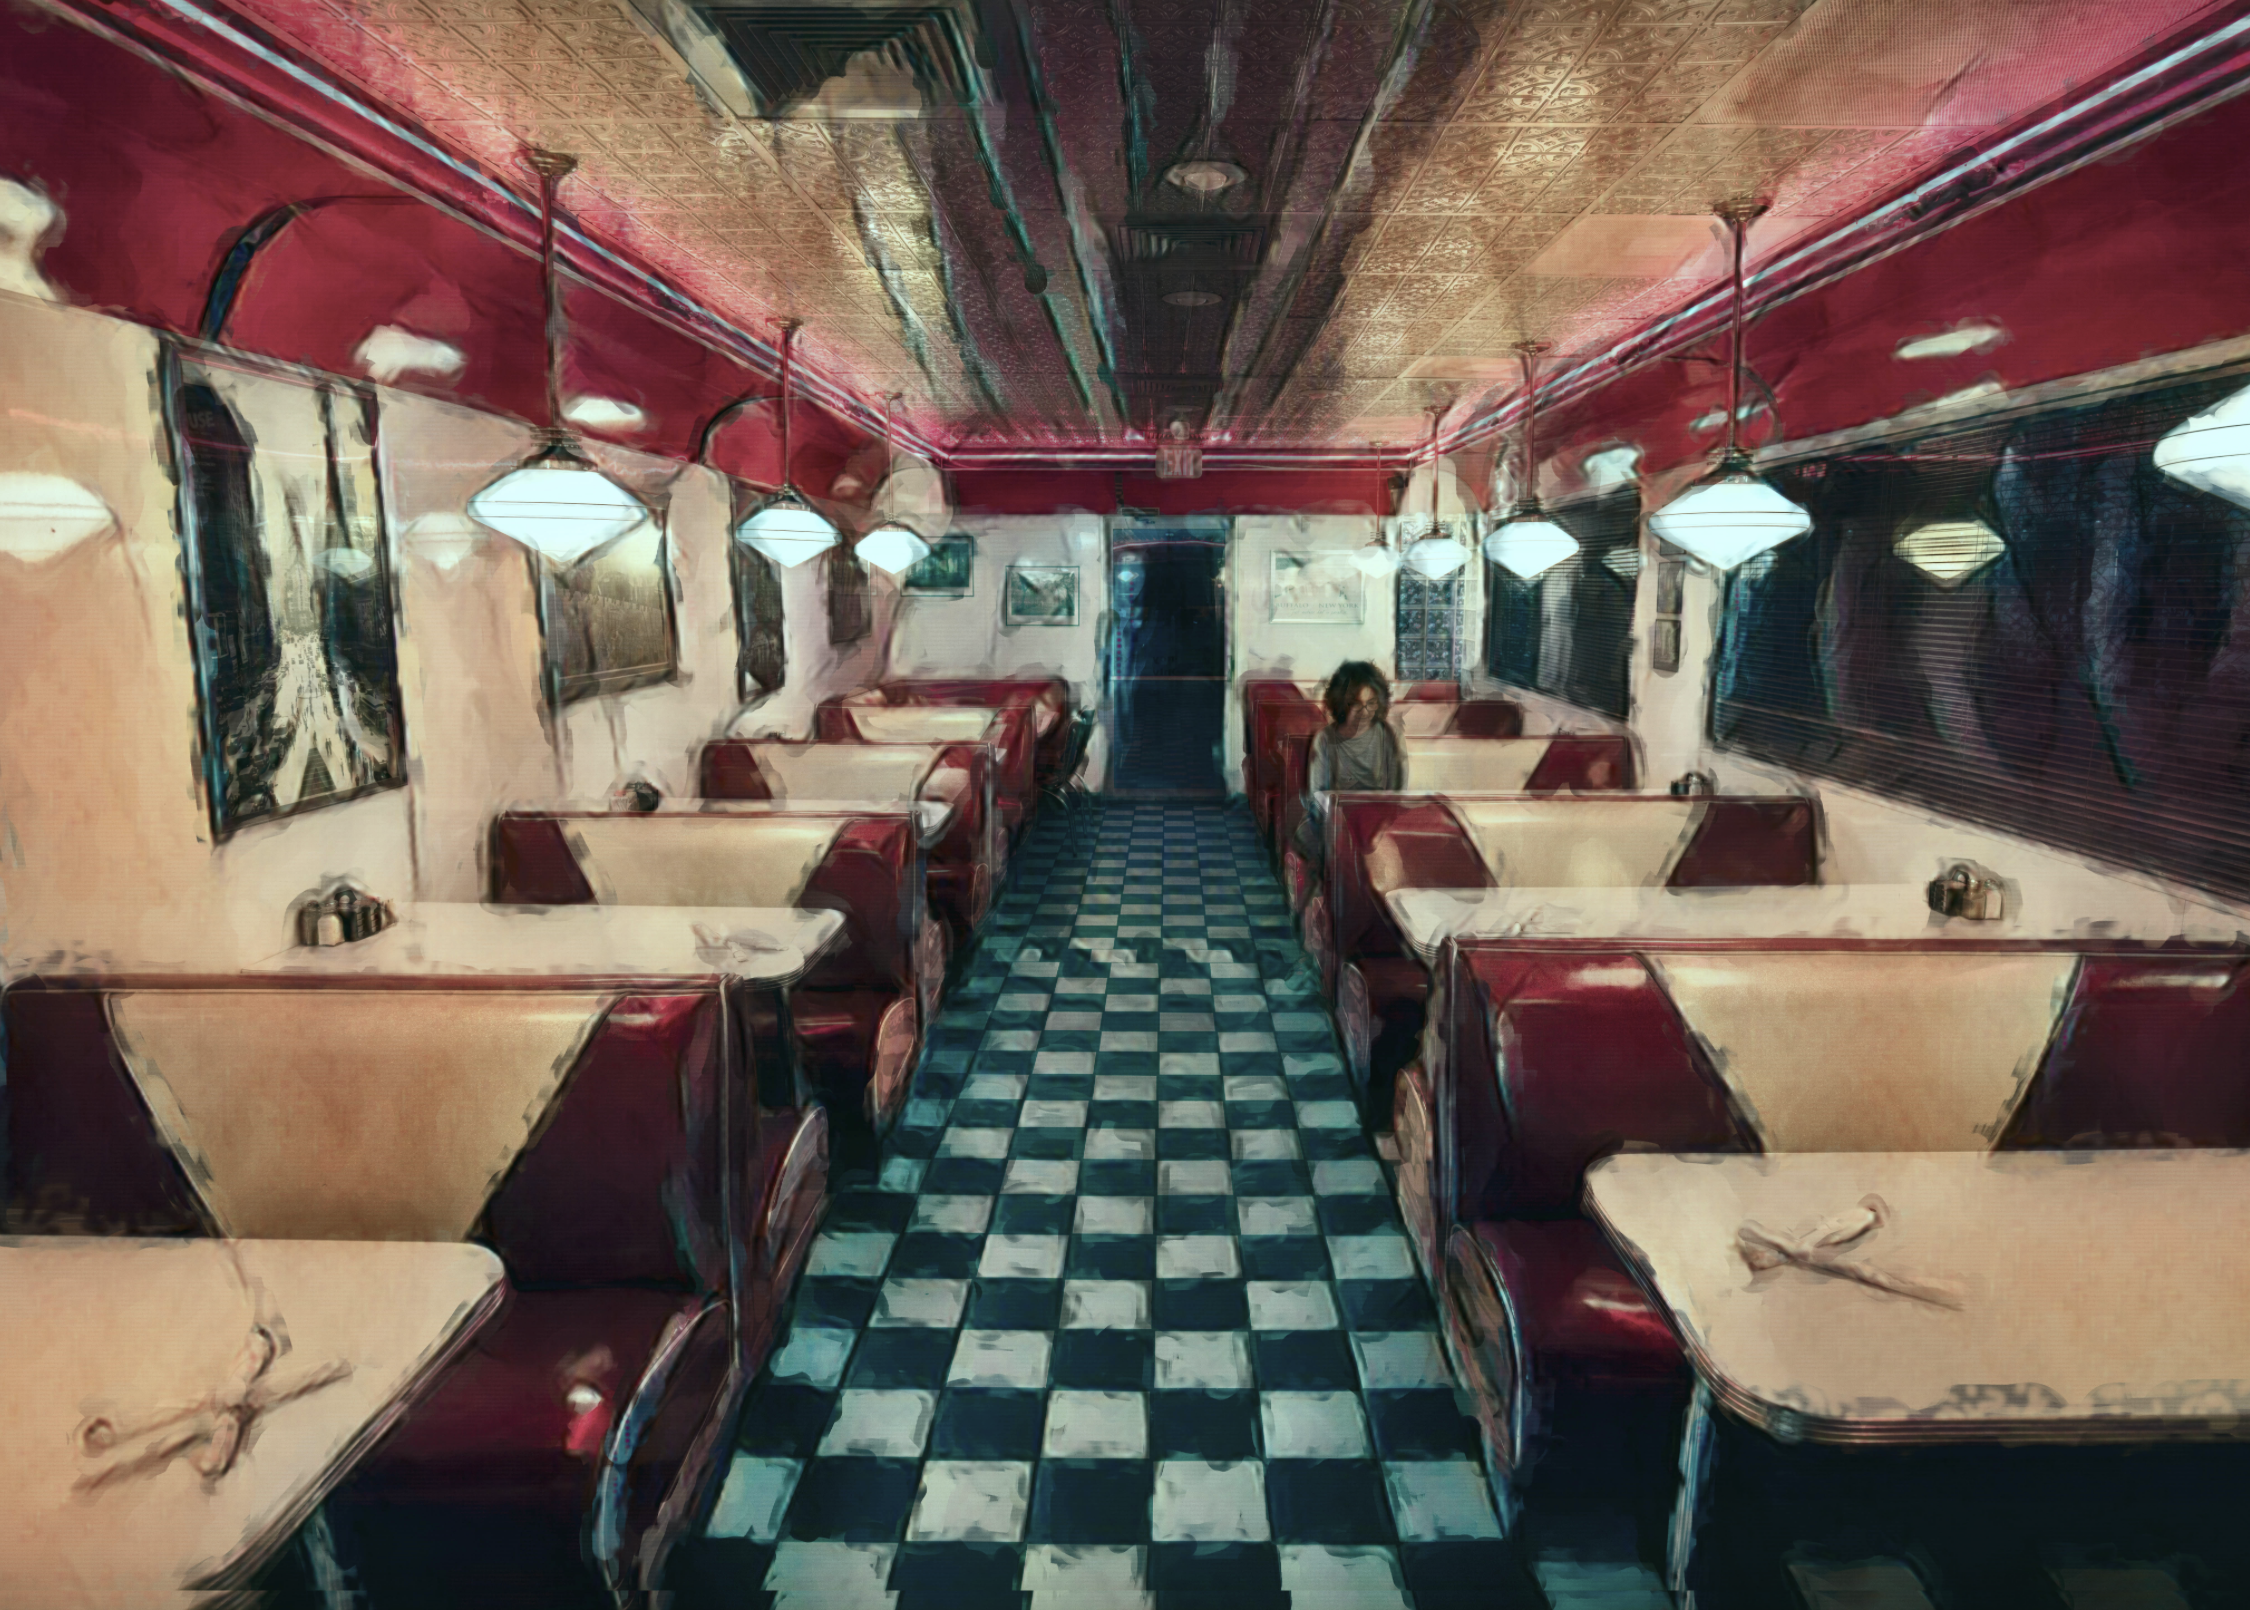 'Distance Diner Dining #1', digitally painted photograph by Dean Stecker ($90) ⎼ 'Matted in 11 x 14 frame.'